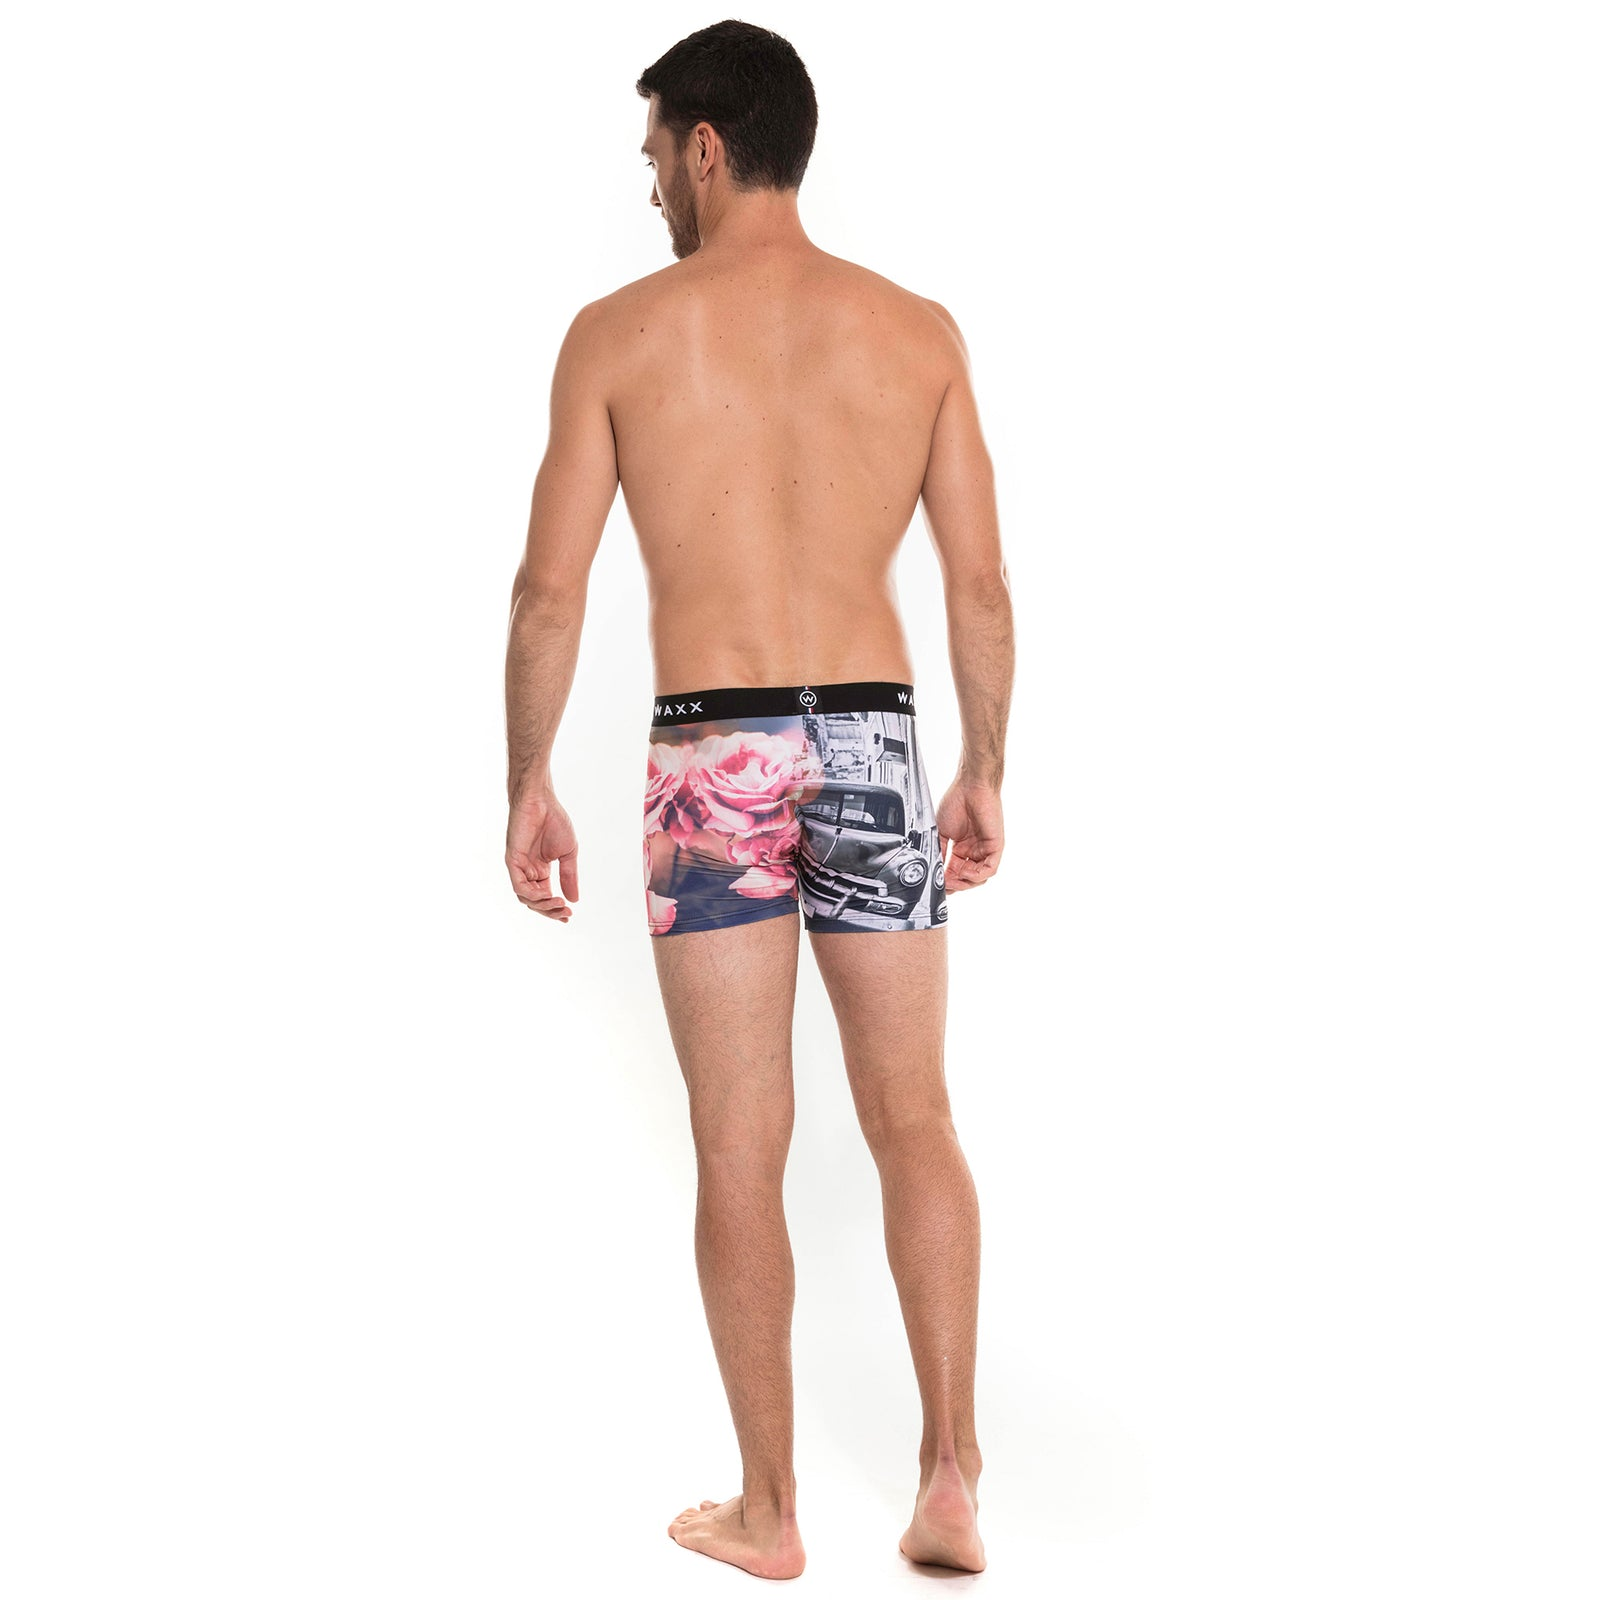 Waxx Men's Trunk Boxer Short Rosa